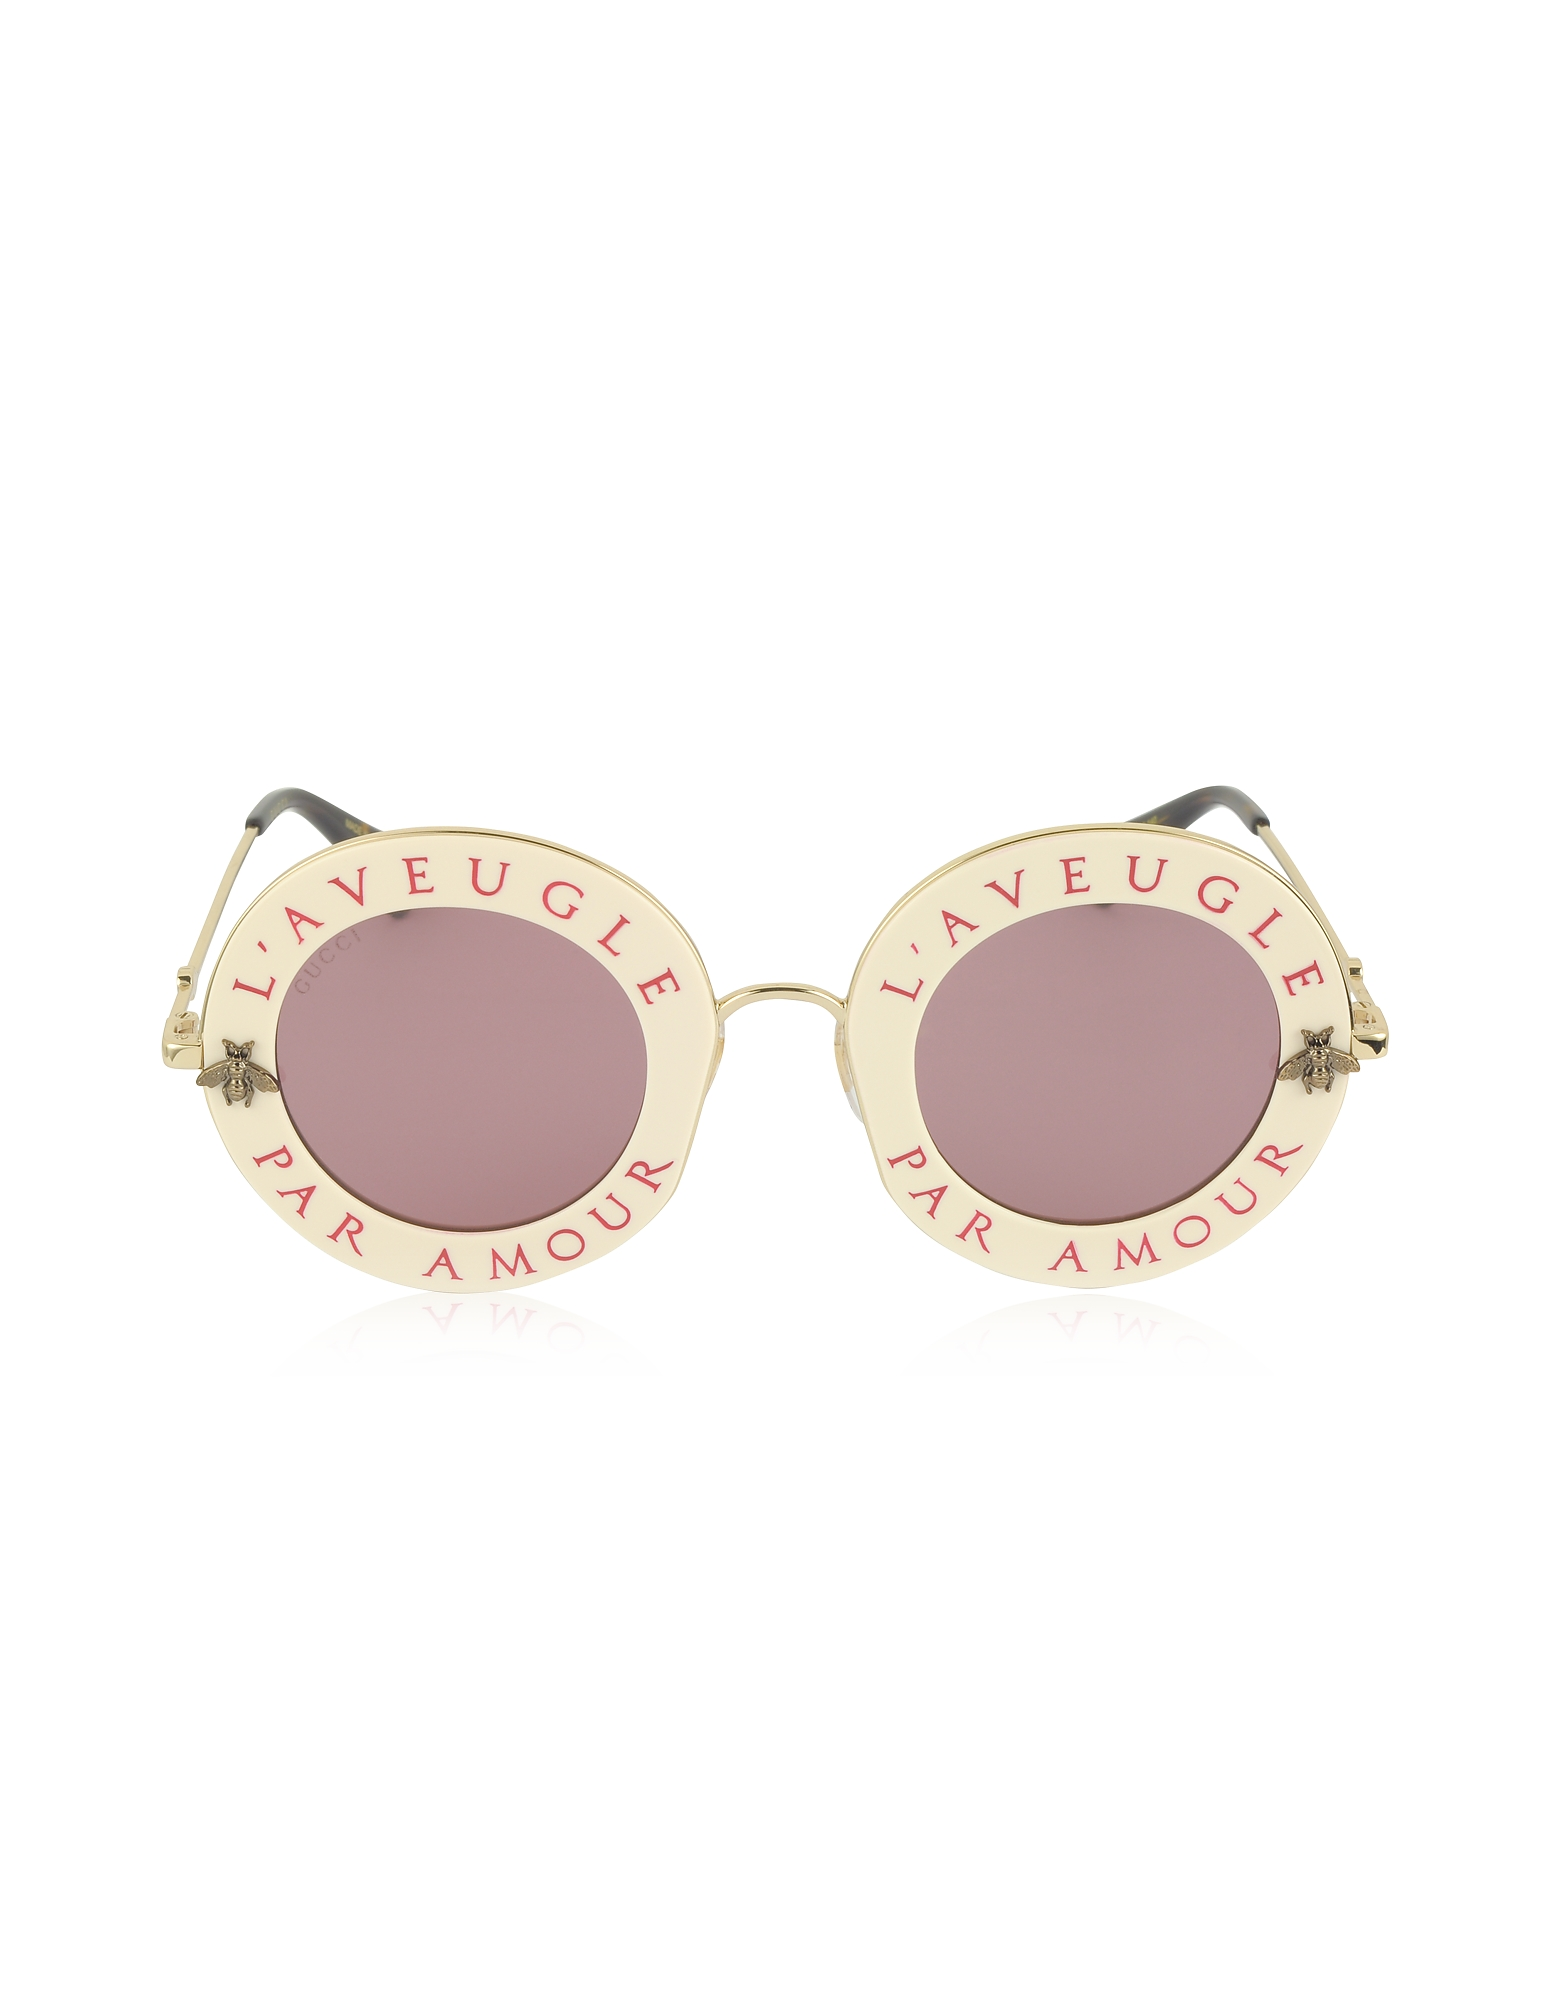 Gucci Sunglasses, GG0113S Acetate and Gold Metal Round Women's Sunglasses